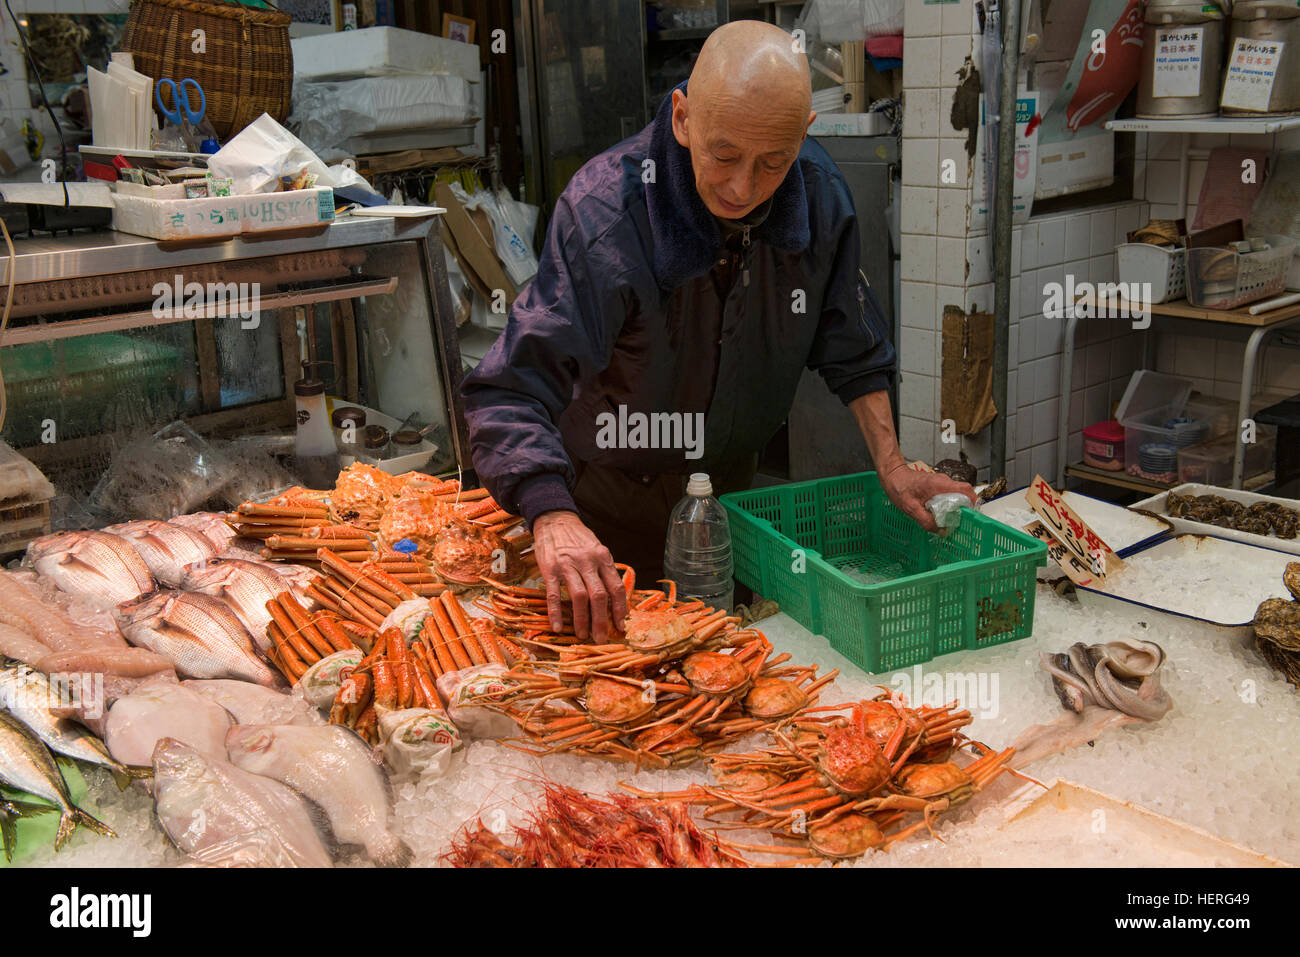 Seafood seller in Nishiki Market, Kyoto, Japan Stock Photo